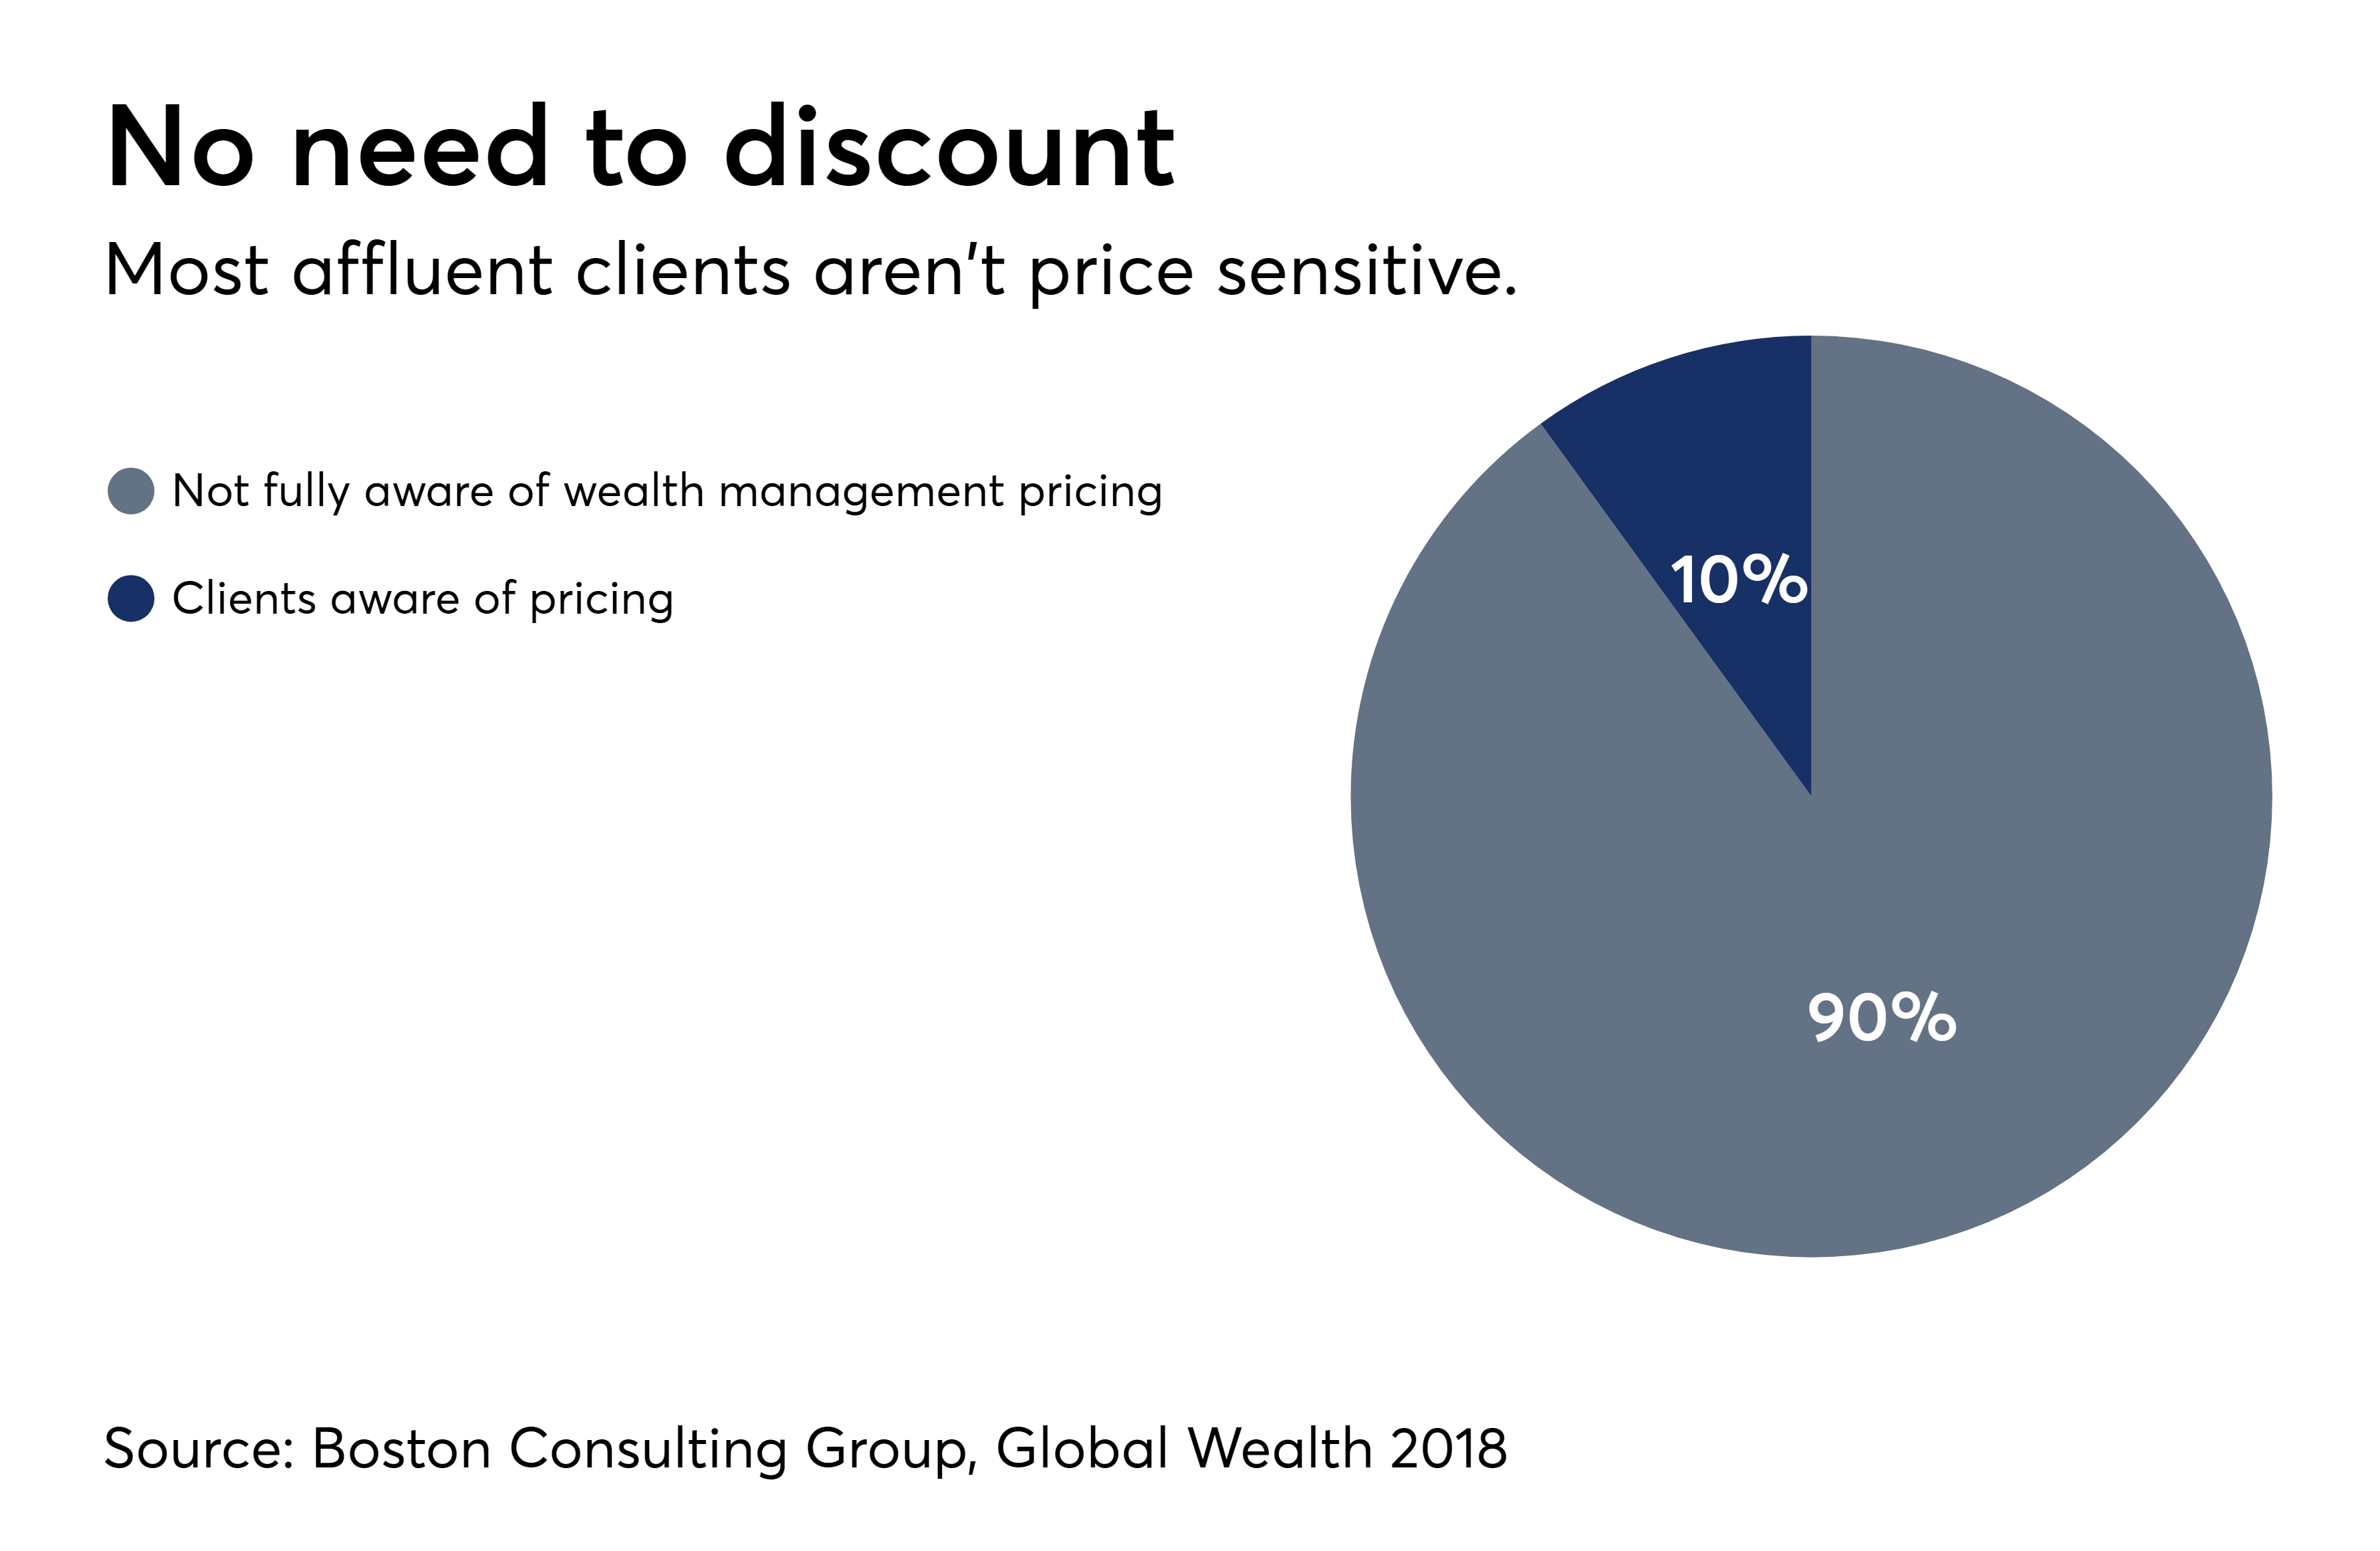 https://assets.sourcemedia.com/7f/46/c65d9c9840d1b2ad8bb46e9440ac/price-awareness-of-wm-clients-revised-1-0618.png